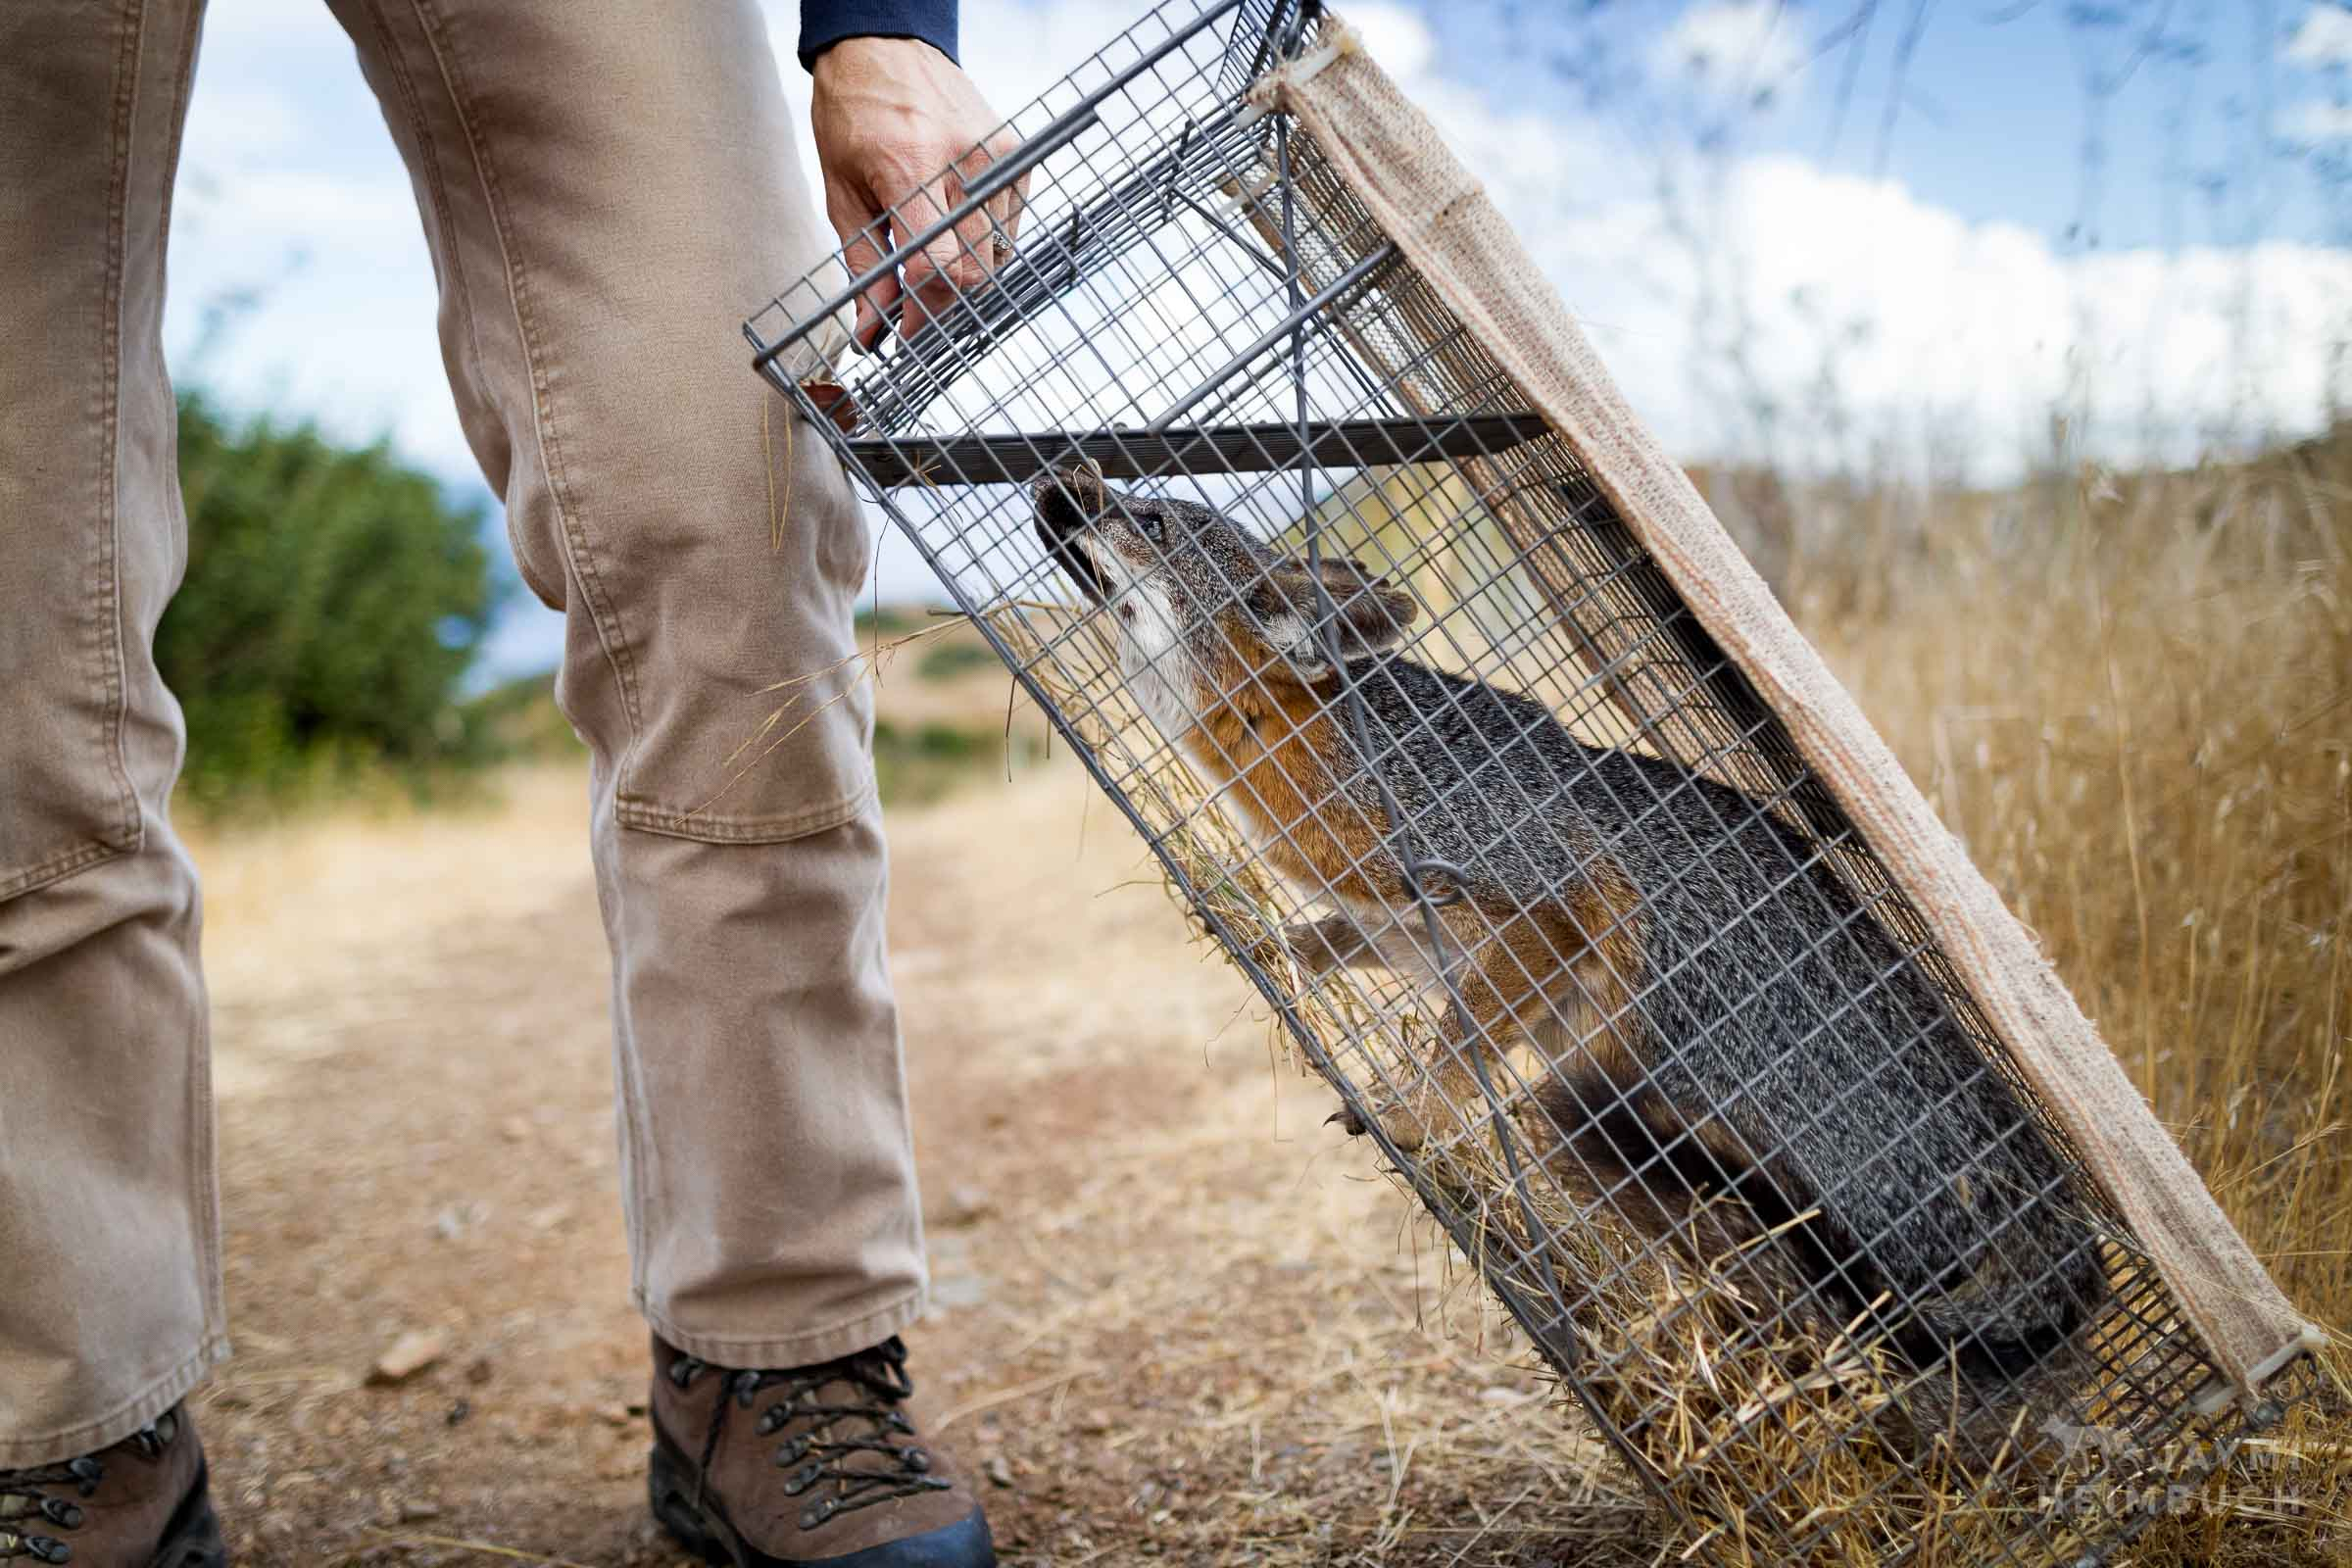 Channel Island Fox, Urocyon littoralis catalinae, being examined by researcher Julie King, Santa Catalina Island,  California, United States. The Channel Island foxes experienced the fastest recovery of any mammal under the Endangered Species Act. However, on Catalina Island, the disease threats that originally harmed the island's unique fox population are still present as the island hosts an average of 1 million tourists each year - and their pets. Without a way to eliminate the human-caused threats, conservation efforts will continue into perpetuity.